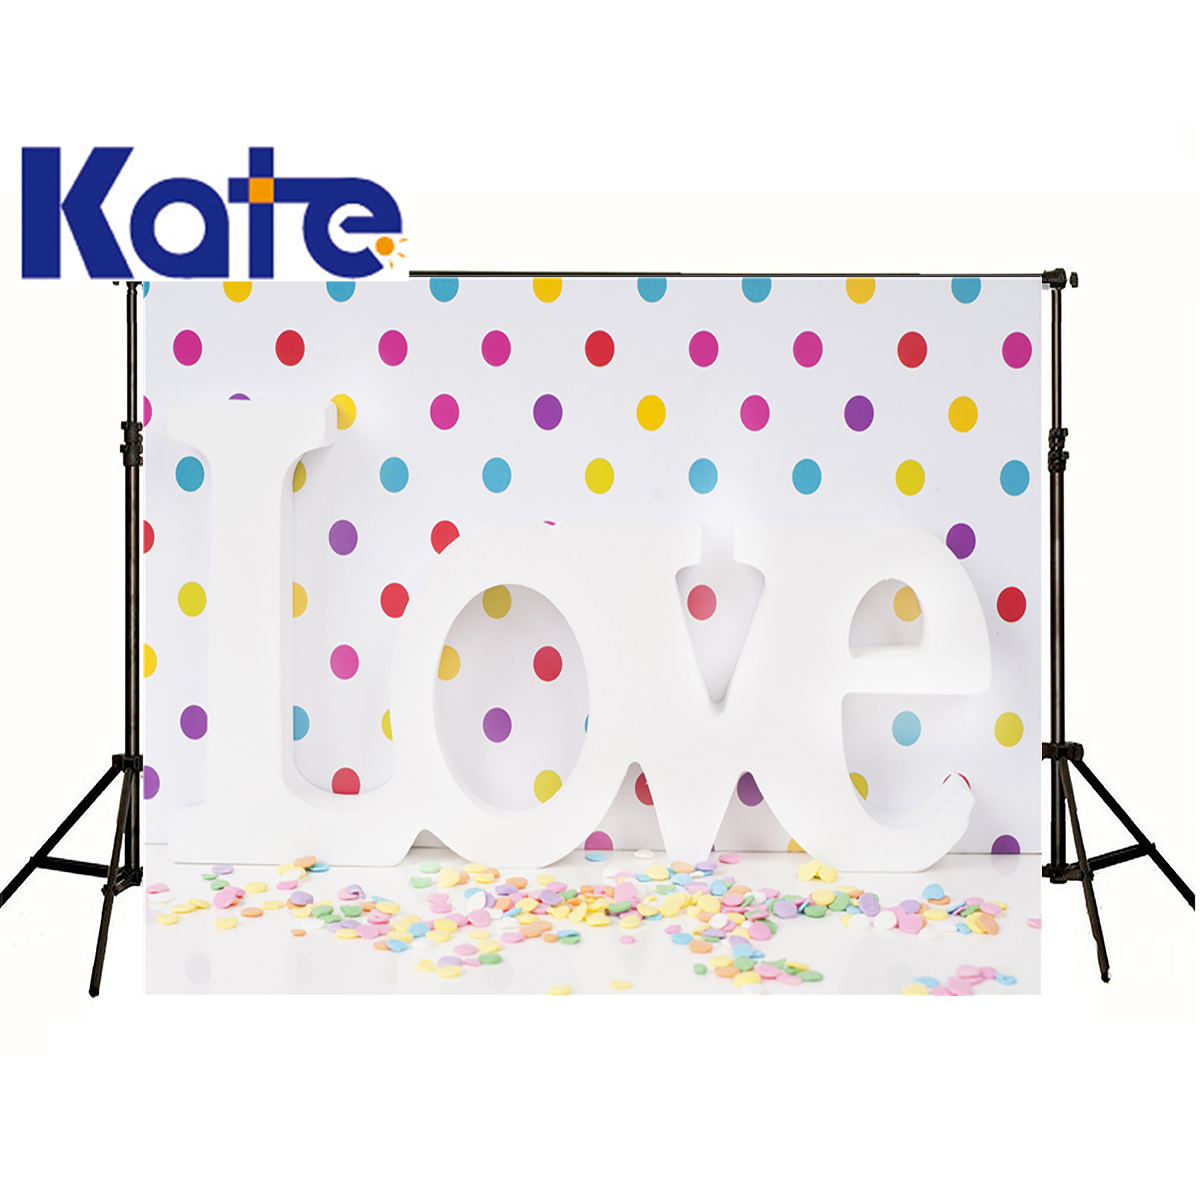 все цены на kate Photographic background I love colored dots on white space customize backdrops baby wedding 150x200cm онлайн